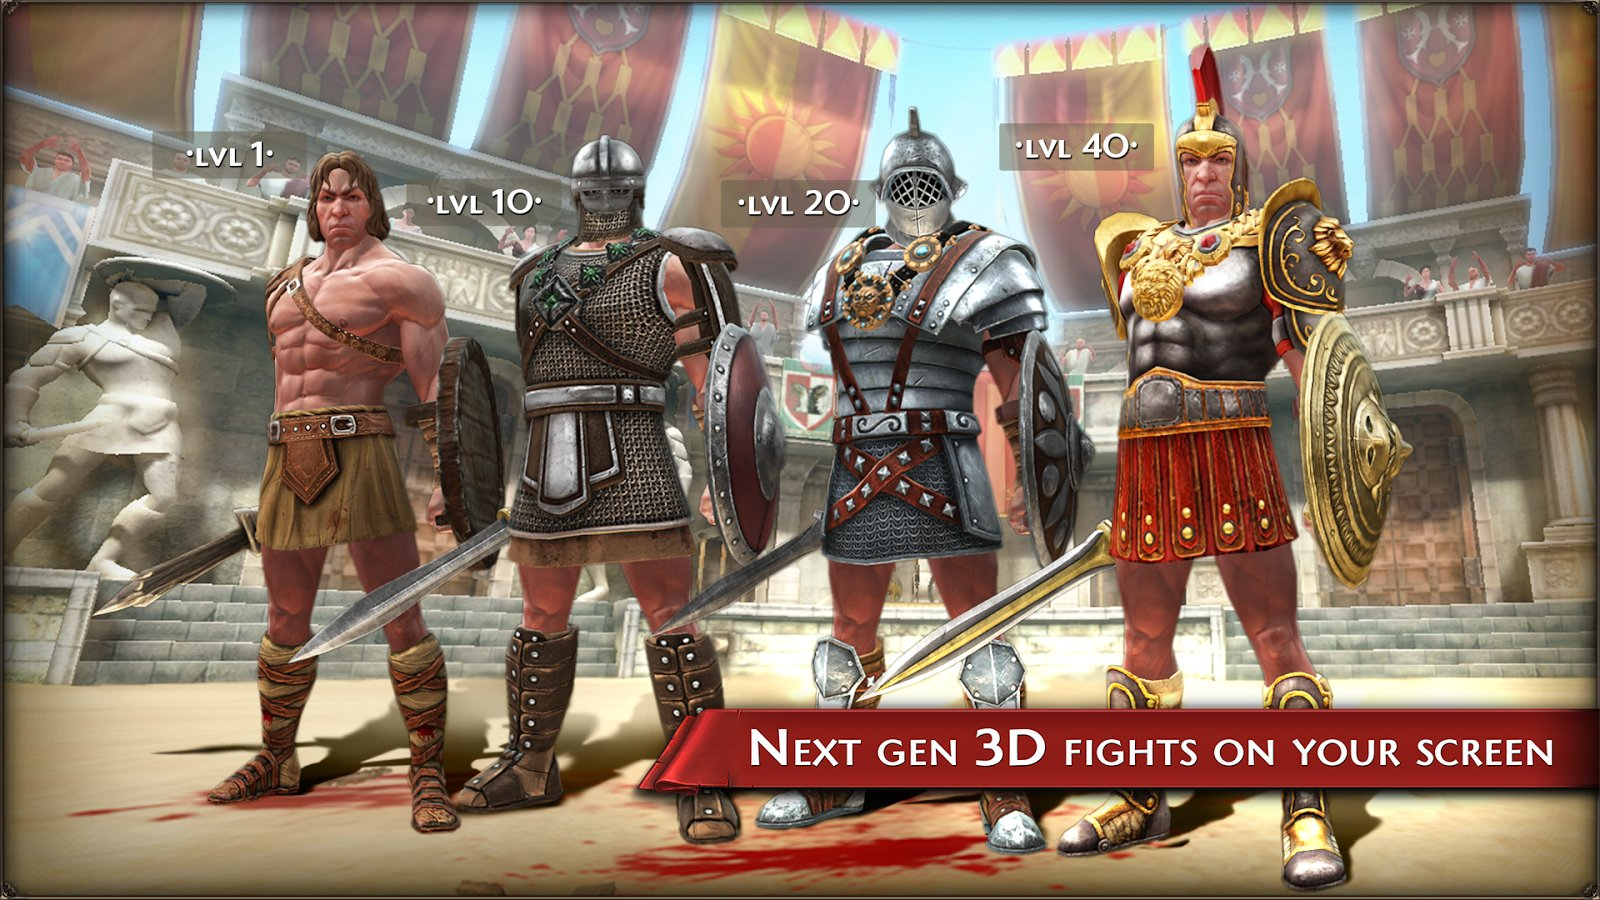 gladiatorial games history paper Watch this video on gladiators, warriors who fought in violent battles with animals and criminals as a form of entertainment for the roman empire.